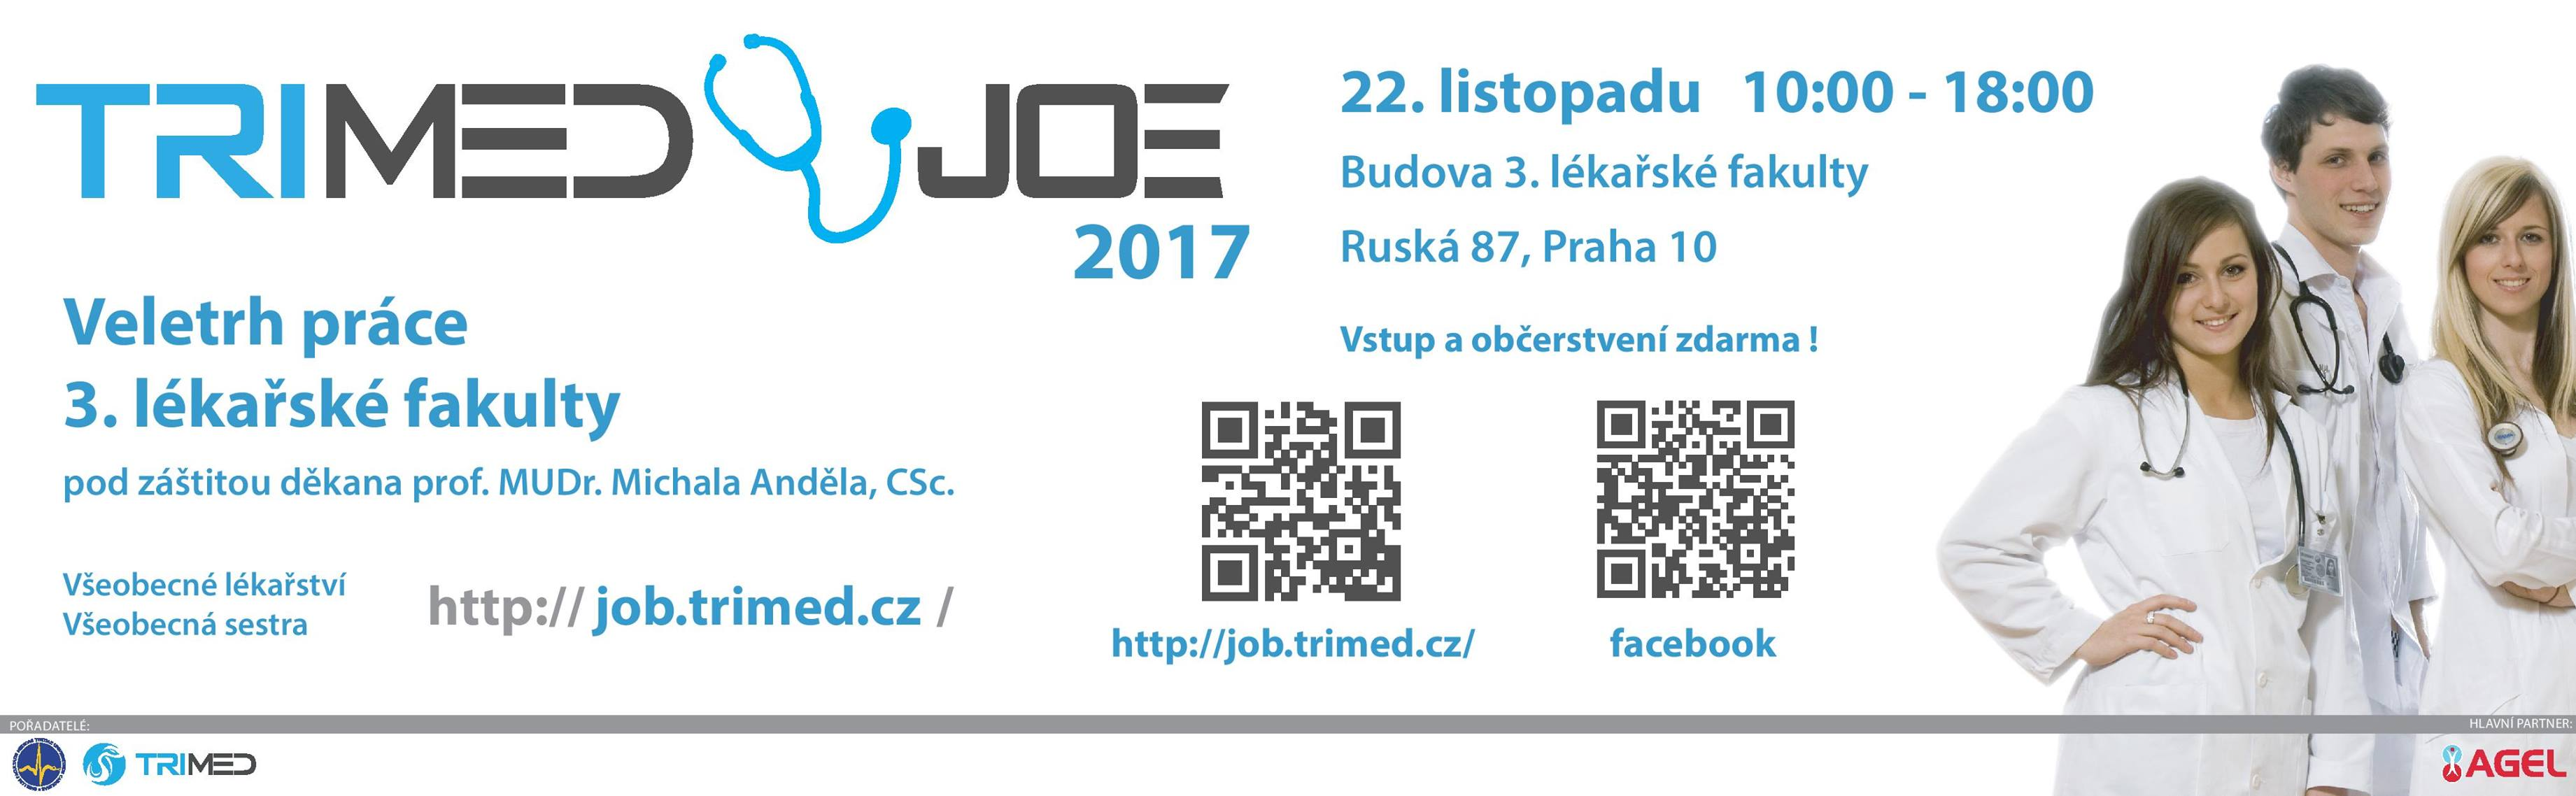 TRIMED JOB 2017